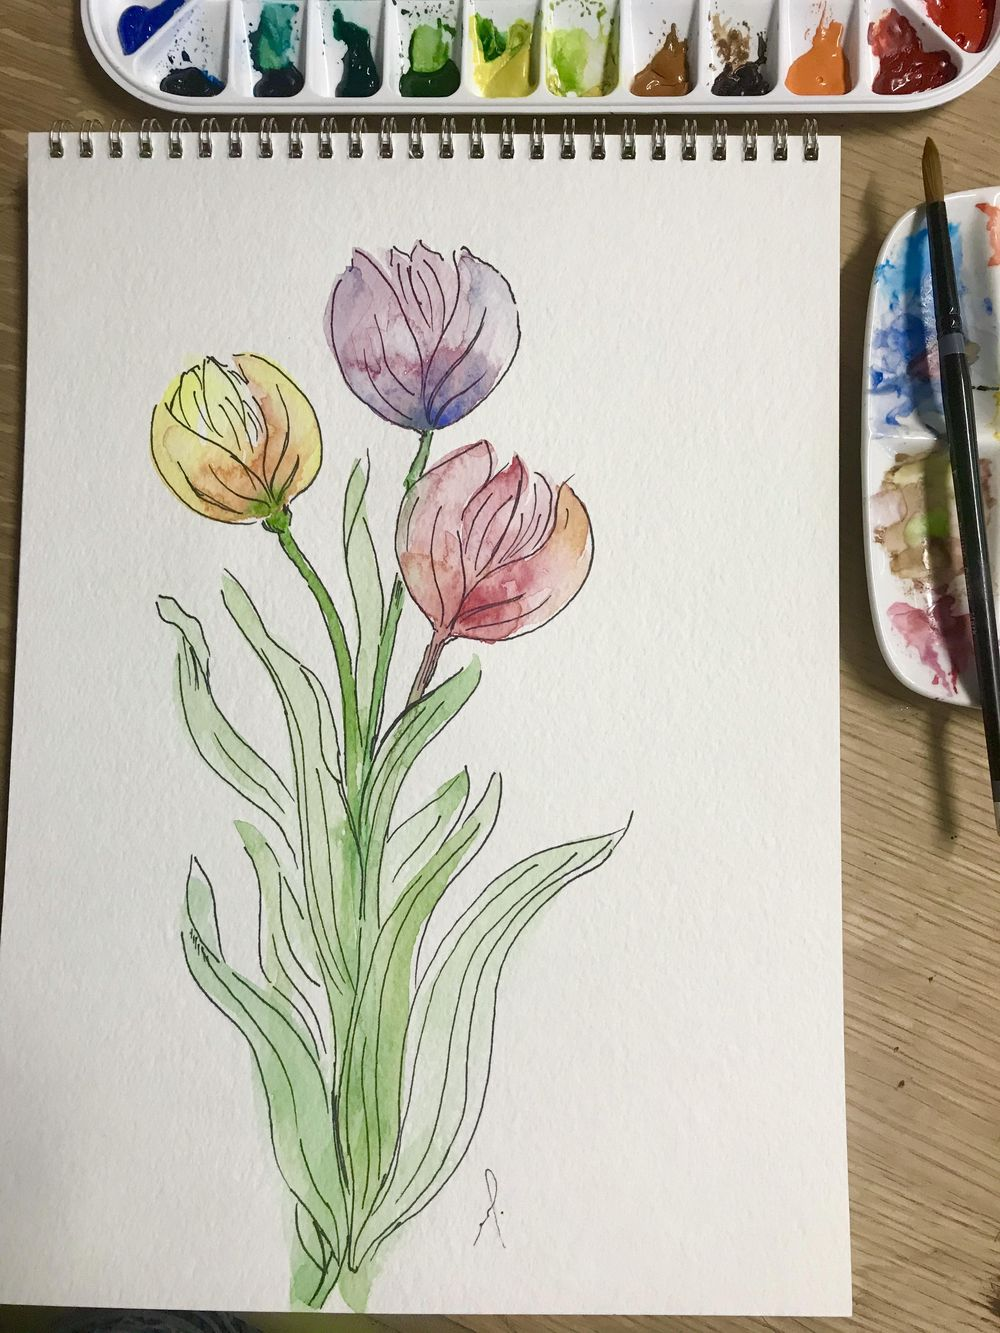 10 fun exercise in watercolor - image 7 - student project